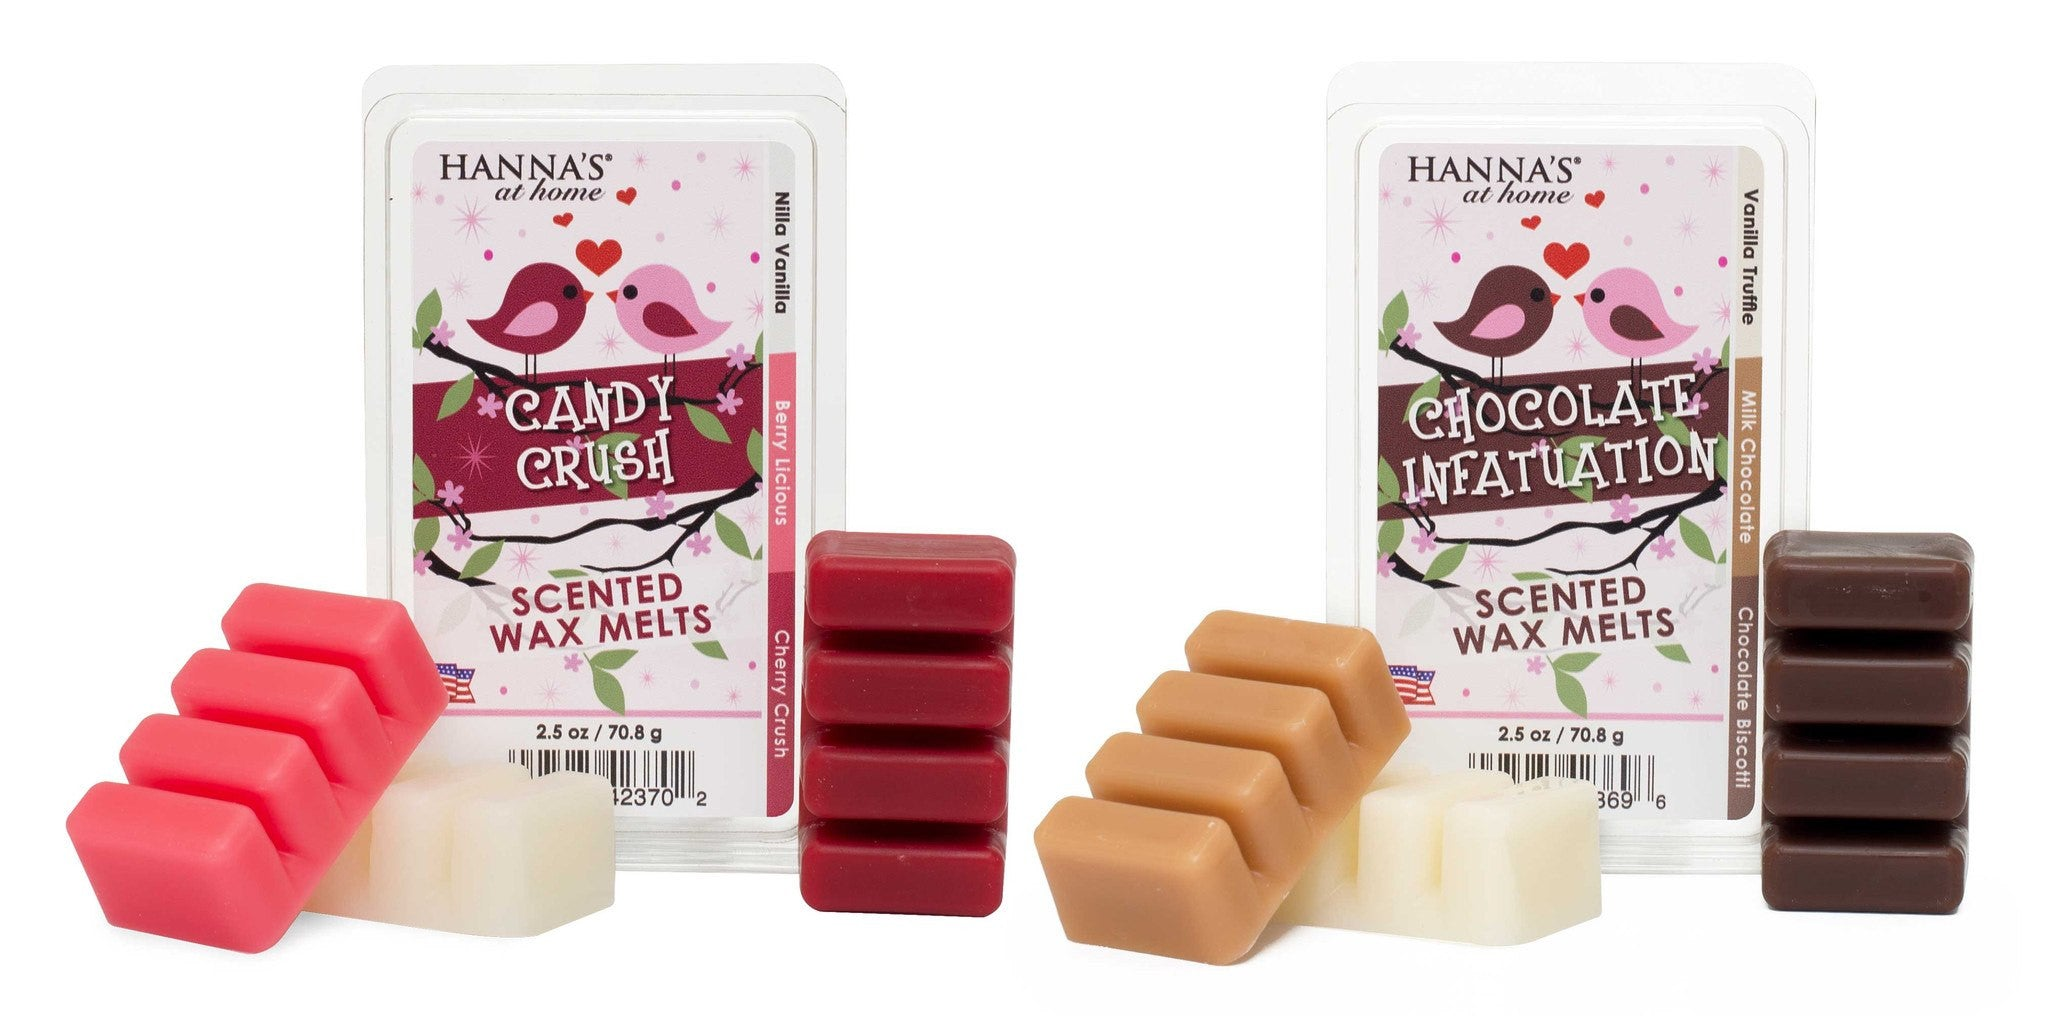 Valentine's Triple Pour Chocolate Infatuation Scented Wax Melts - Candlemart.com - 2